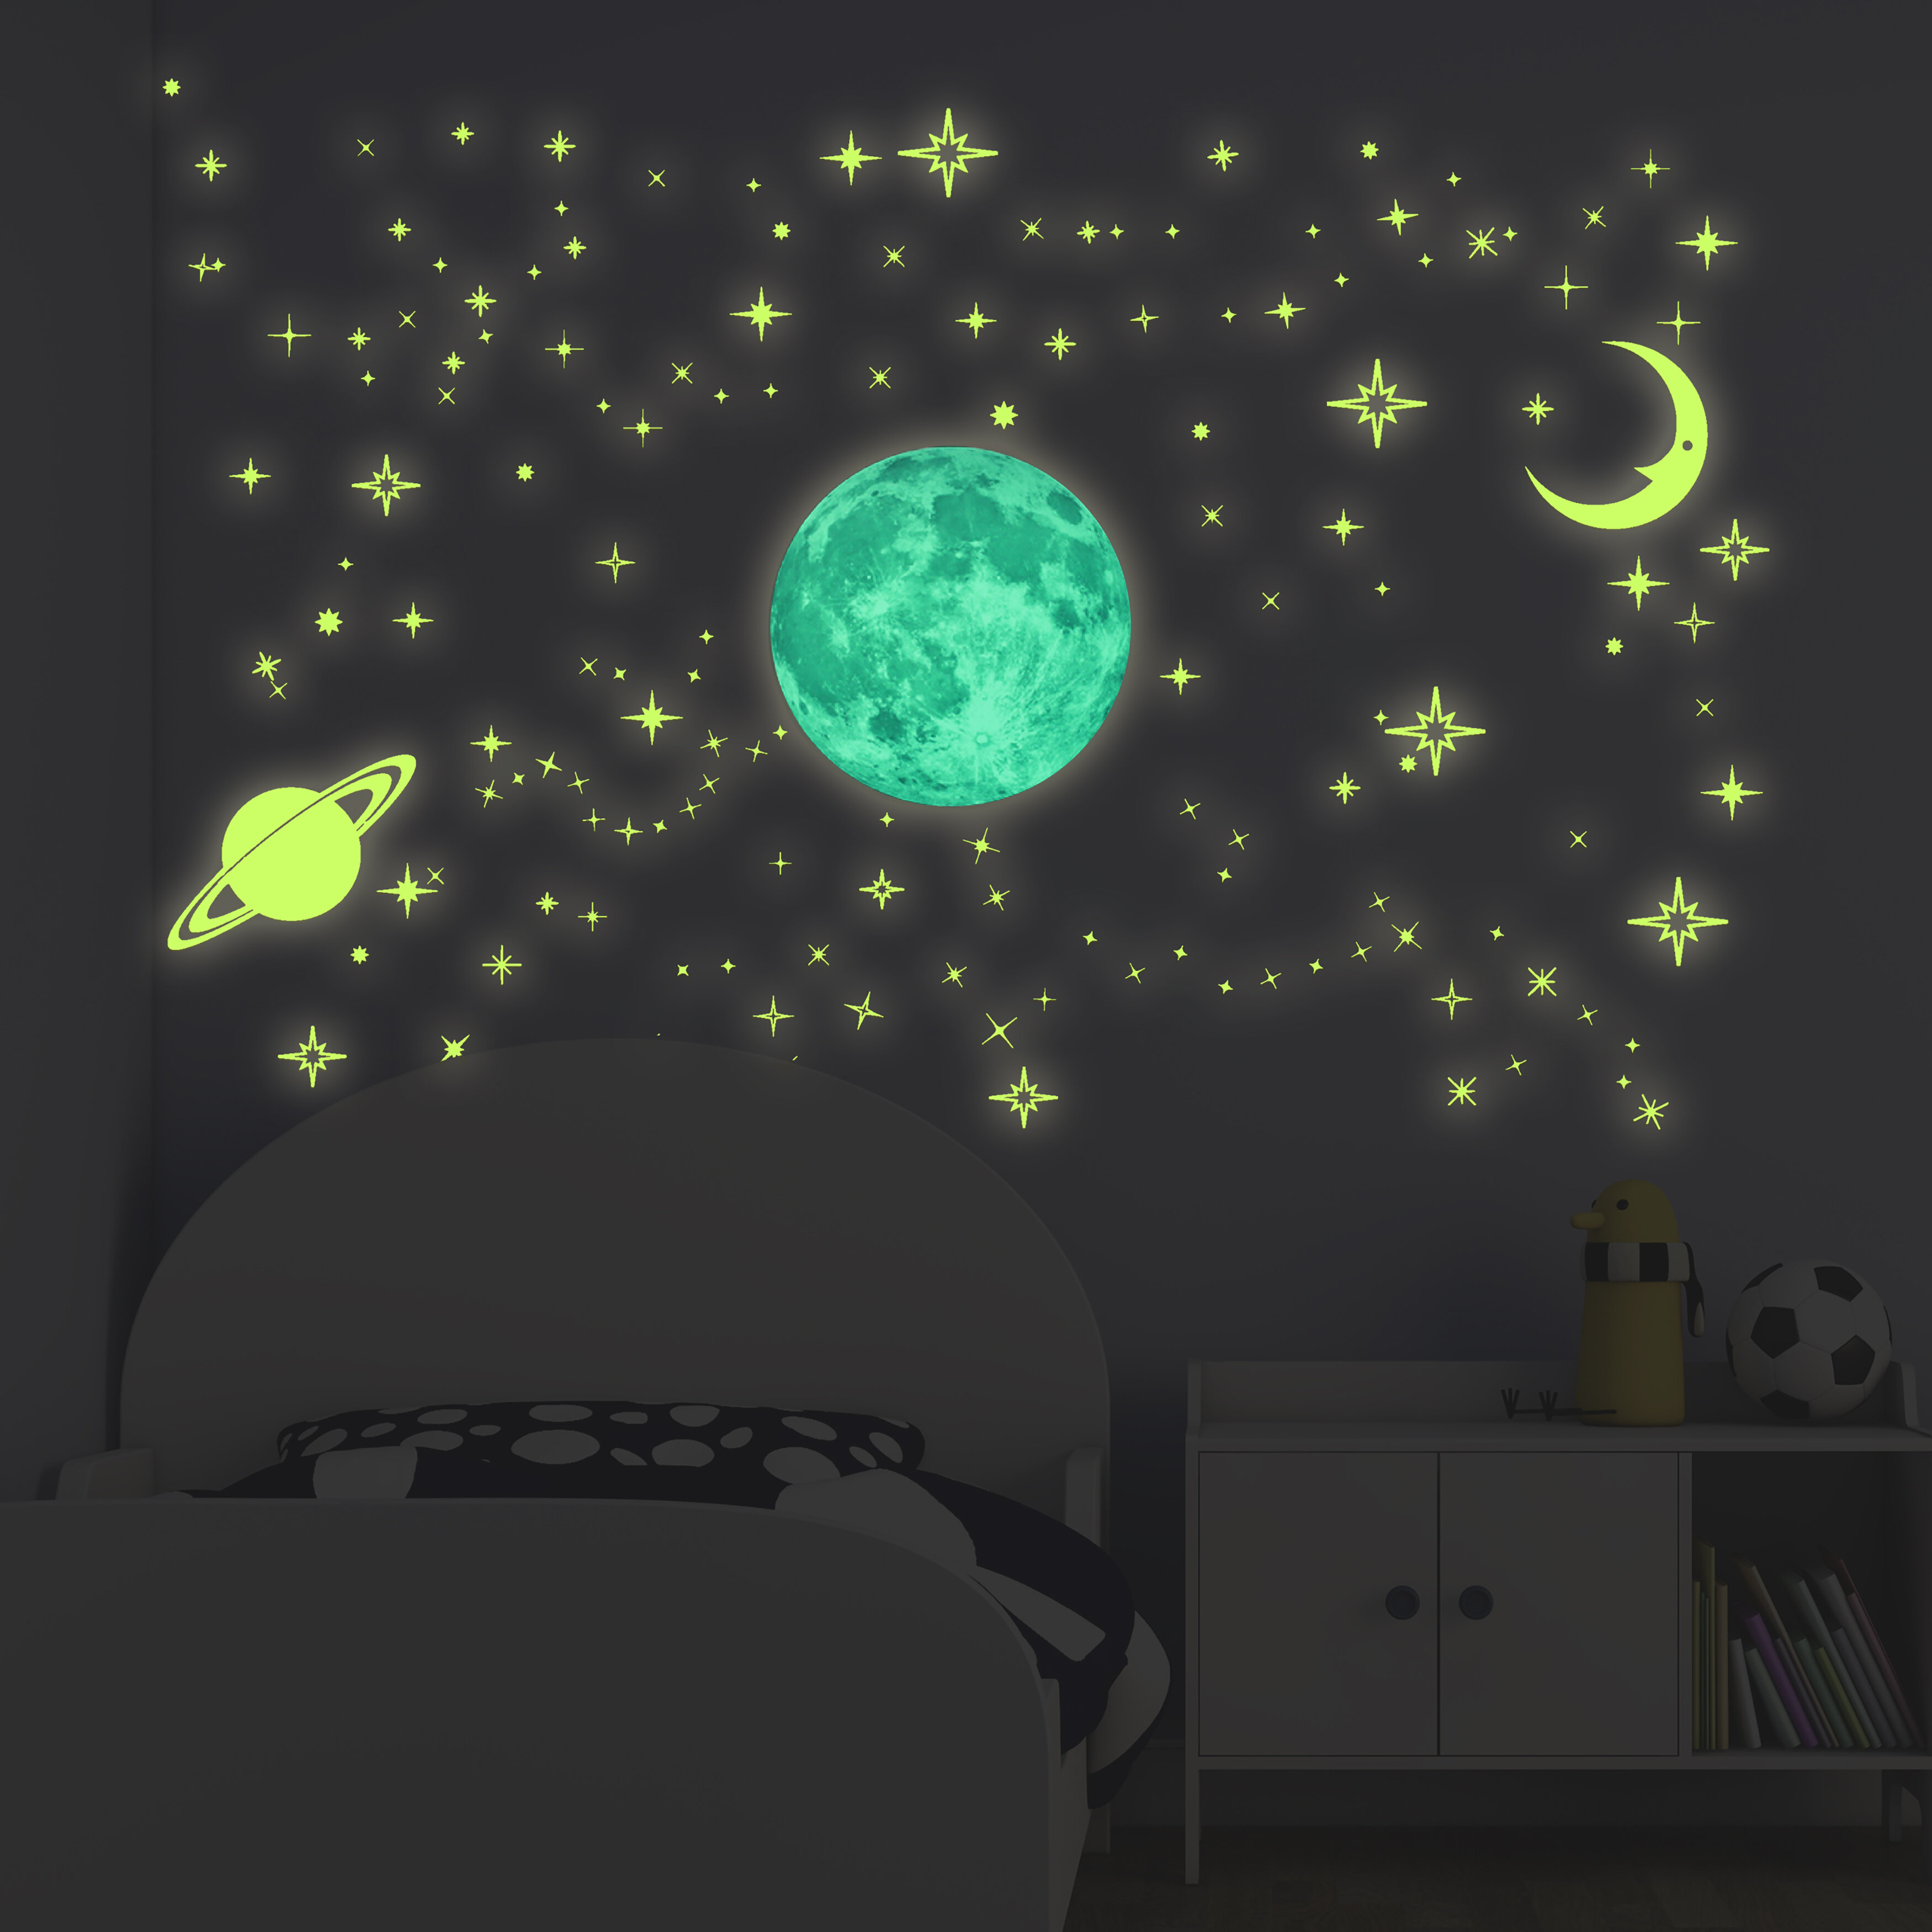 Glow in the Dark SPACE Stickers ROCKET MOON & STARS Bedroom Decoration Free  Post Home & Garden patterer Home Décor